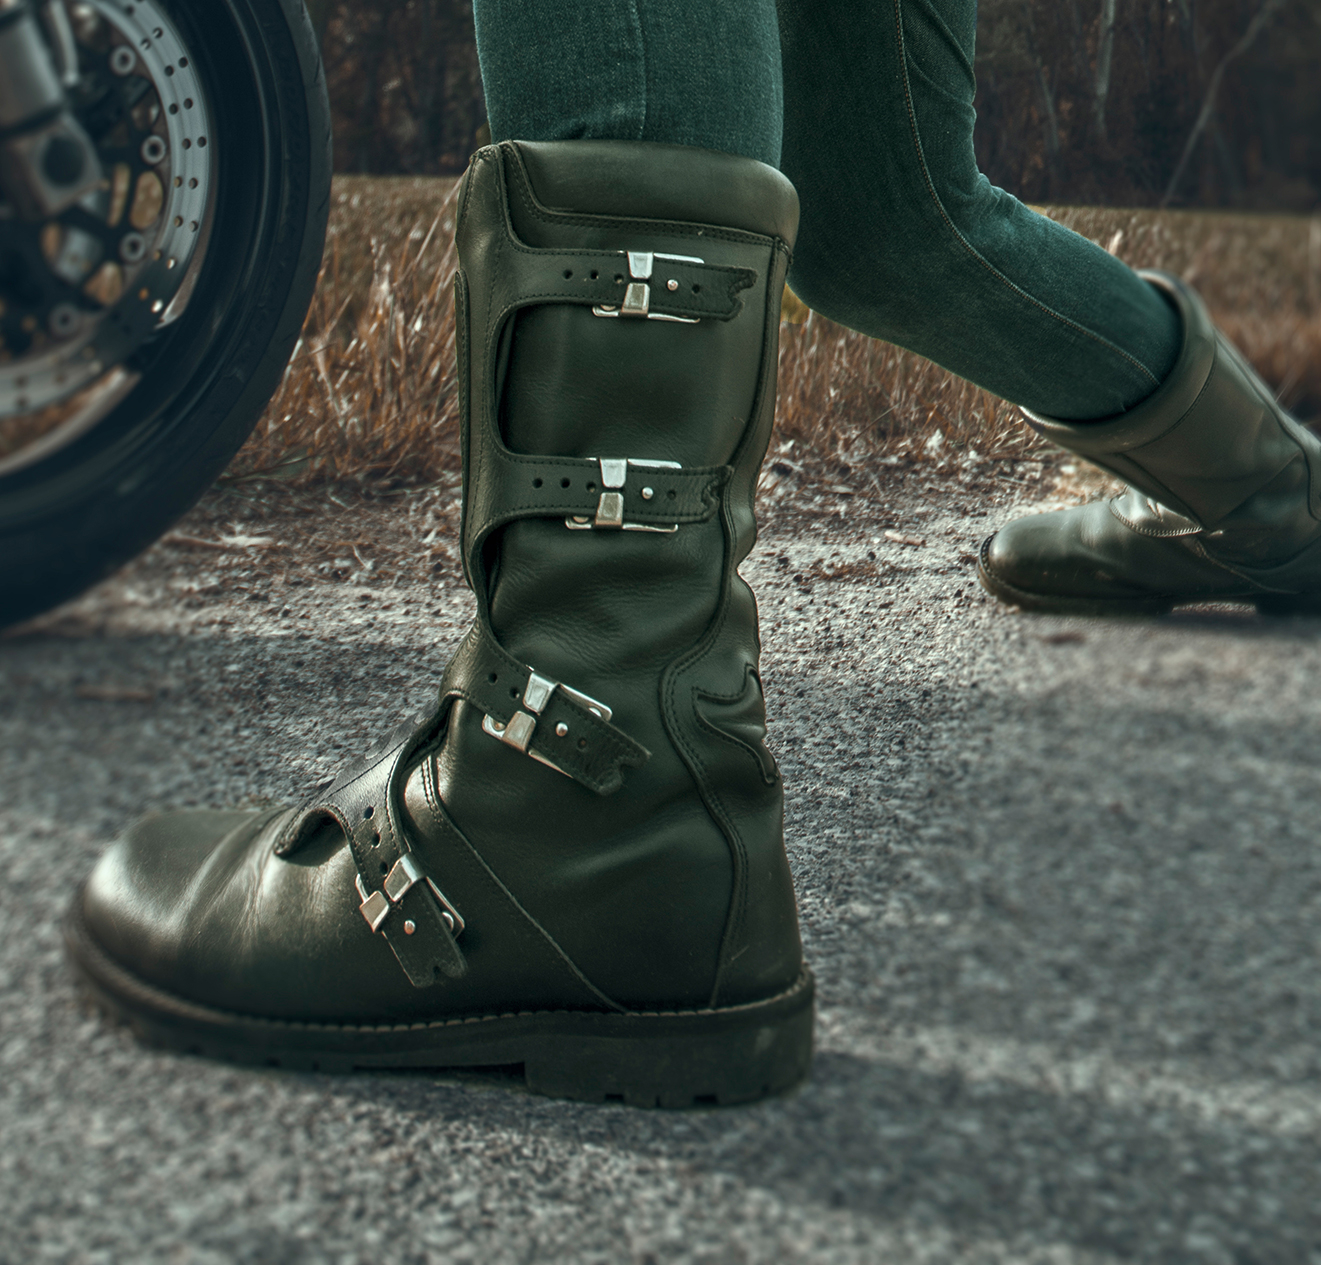 How to wear motorcycle boots: closure